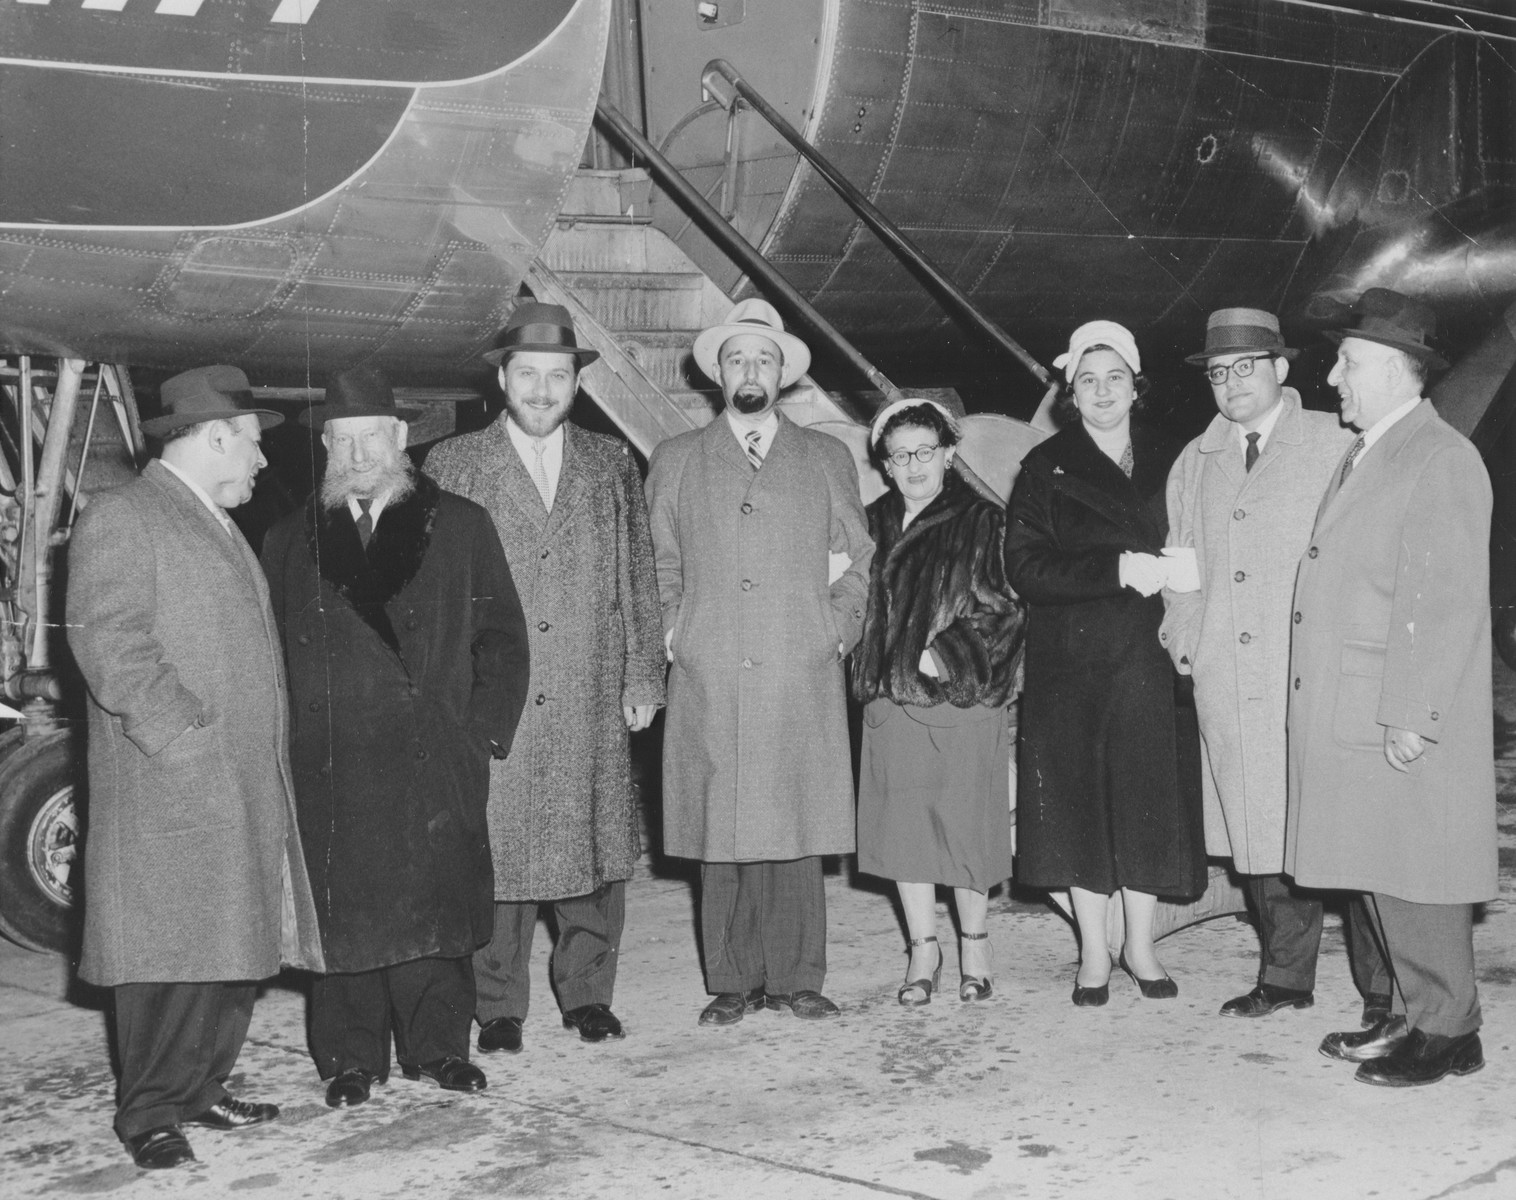 Rabbi Eliezer Silver disembarks from an airplane to visit to the DP camps of Europe.